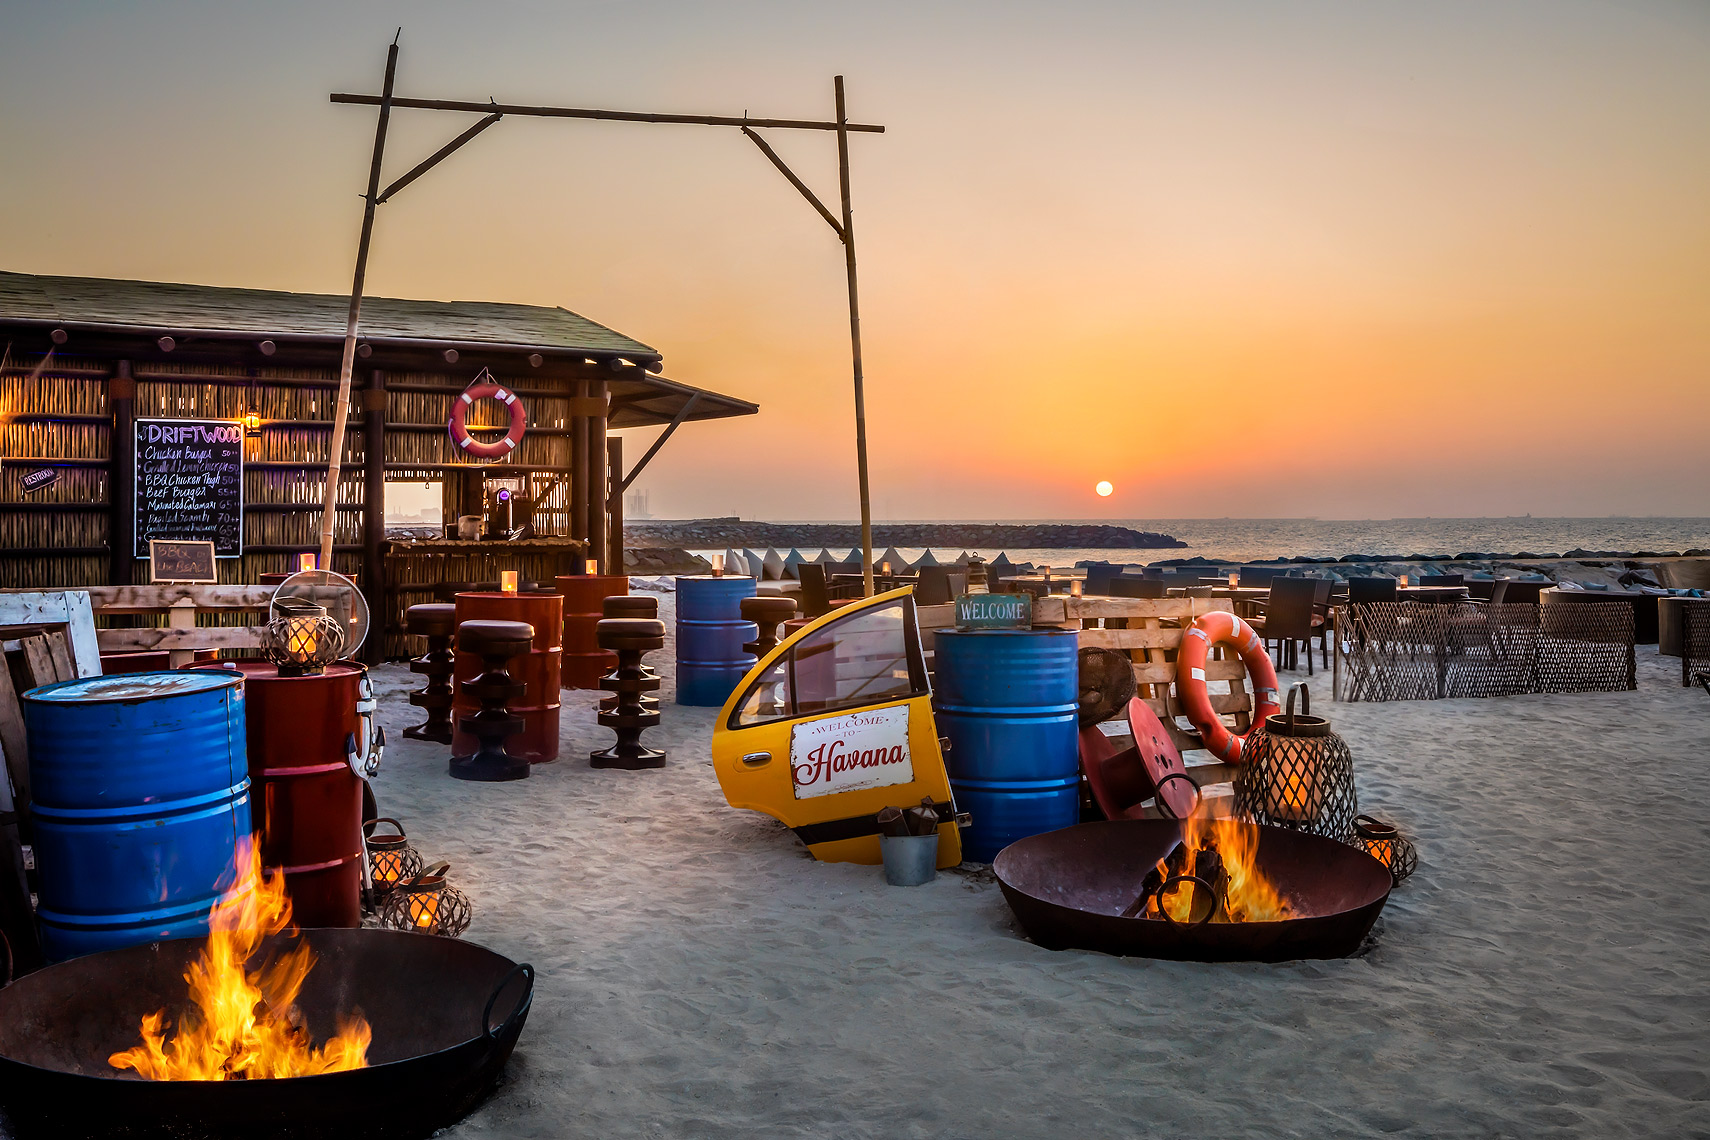 Fairmont_Ajman_Hotel_Beach_Bar - Luxury Hotel Photography